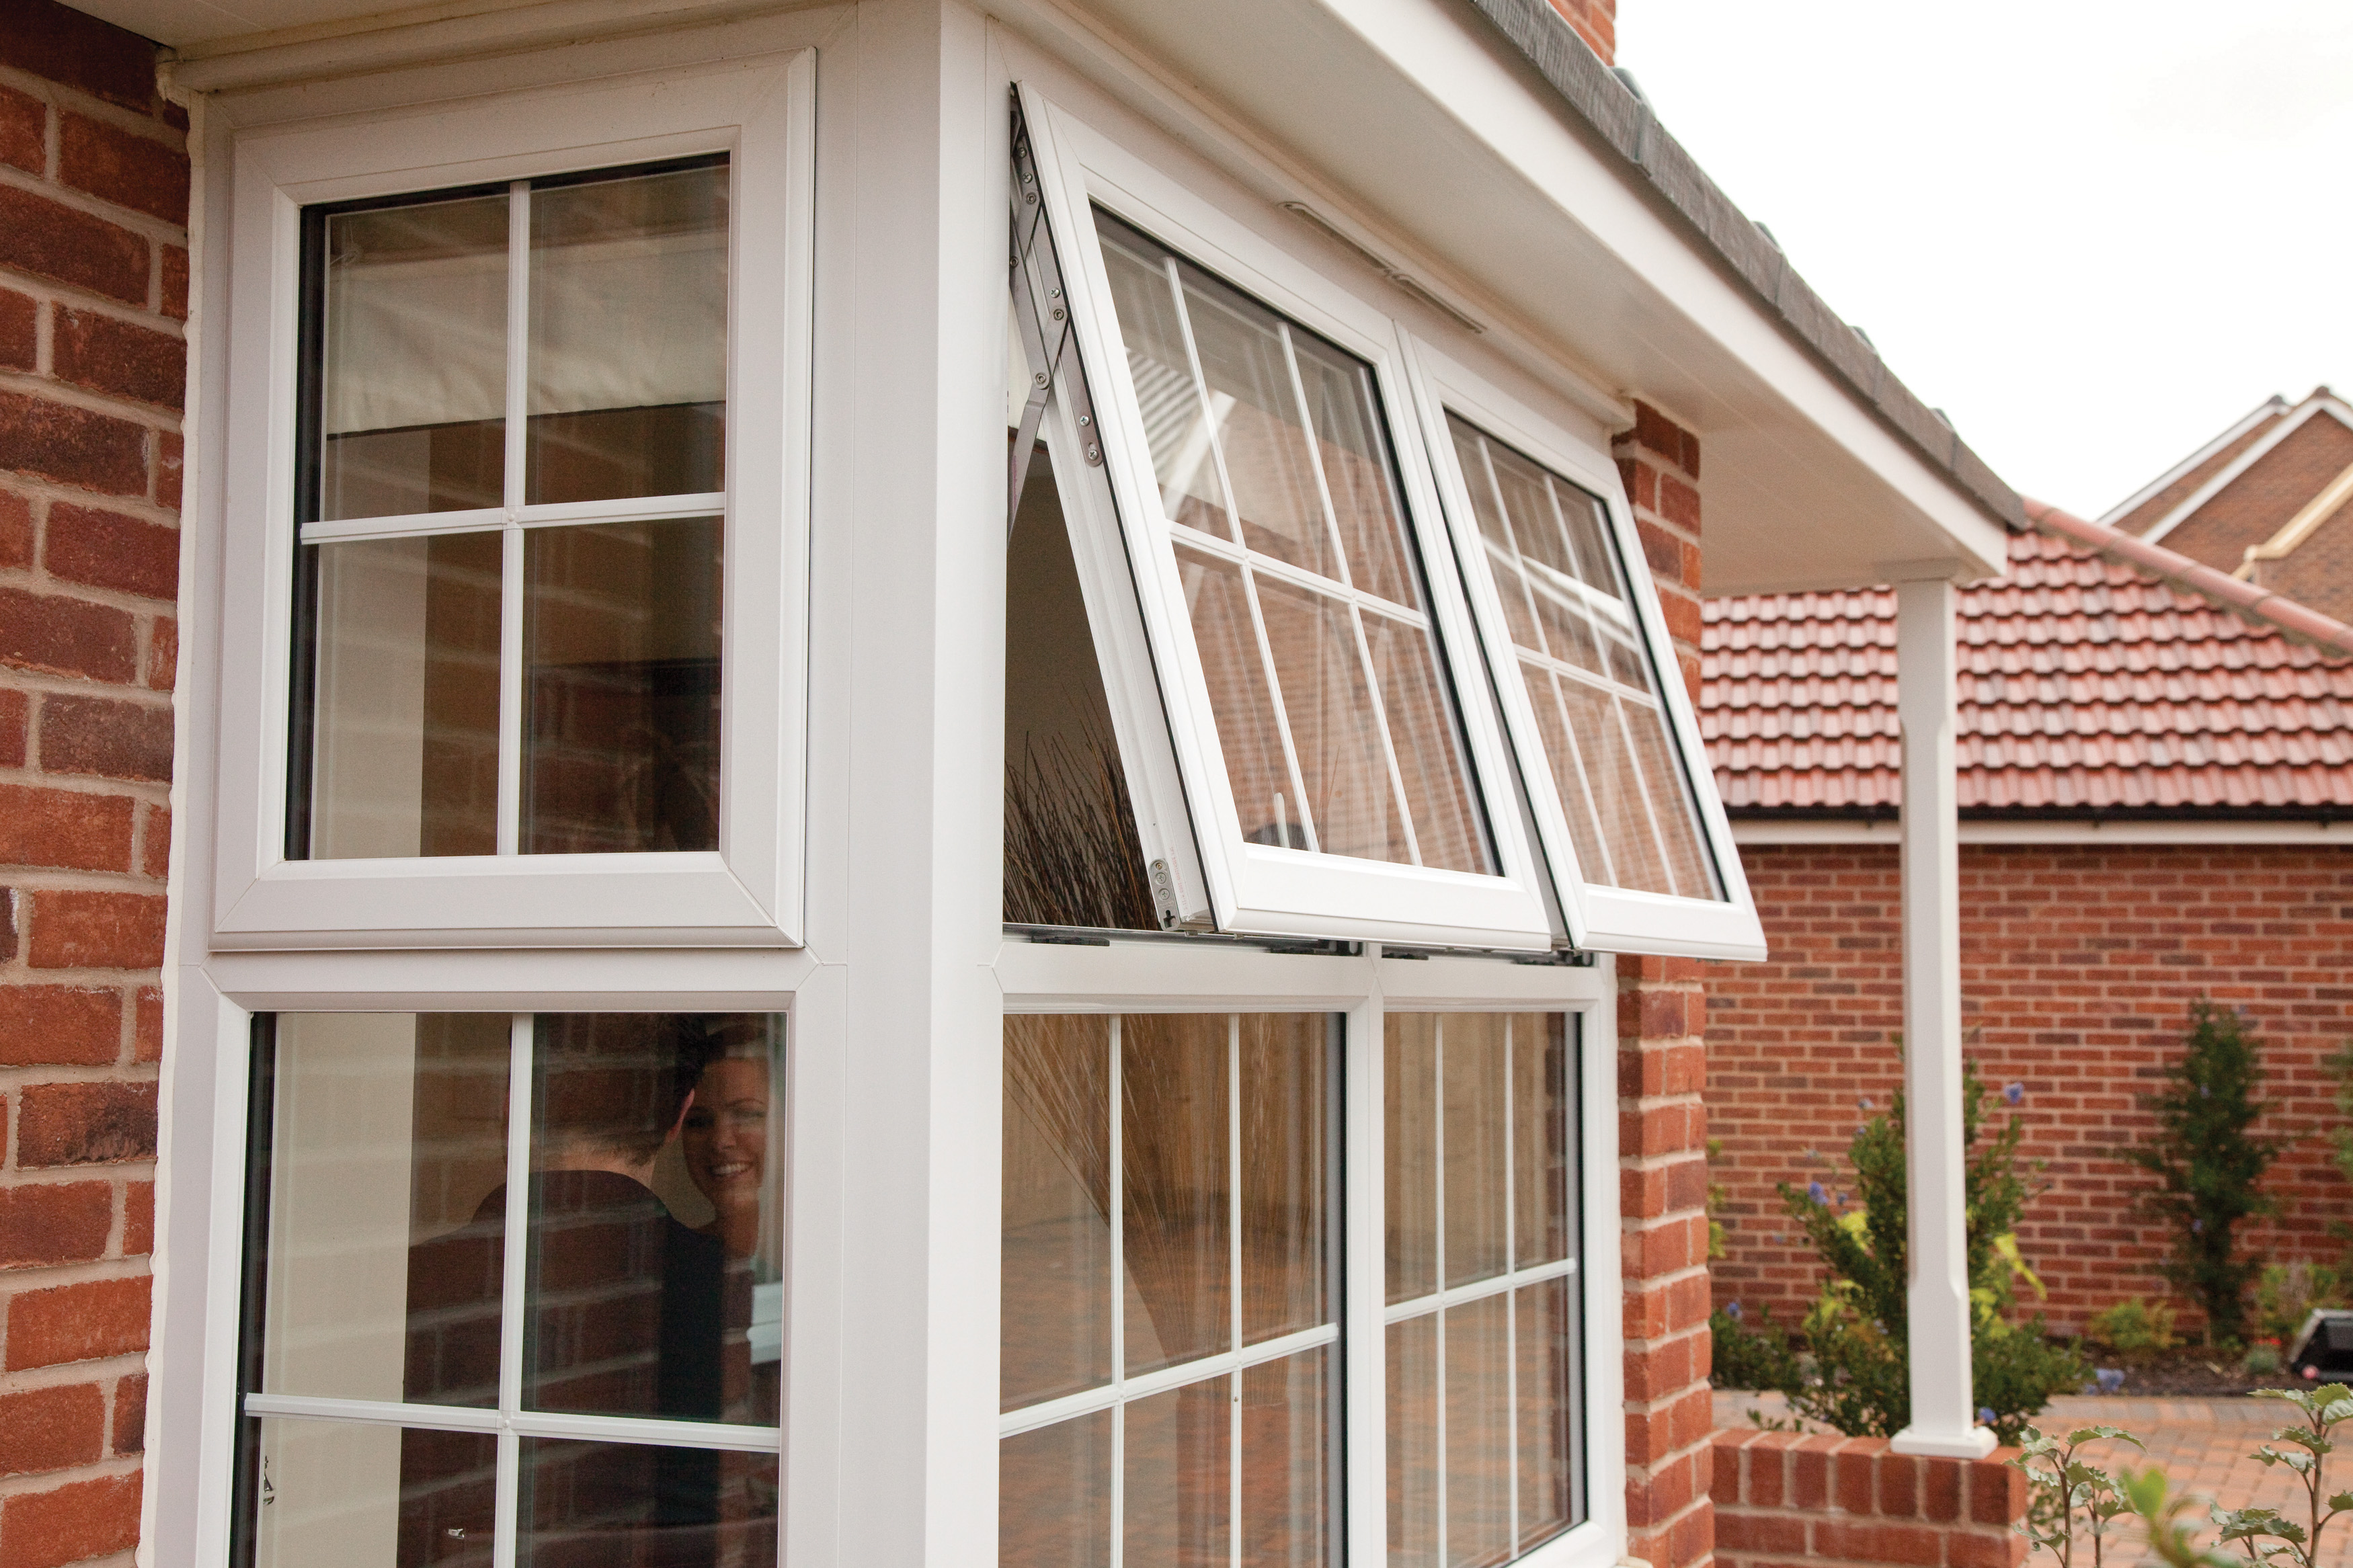 Pvcu double and triple glazed windows in north devon for Upvc window designs